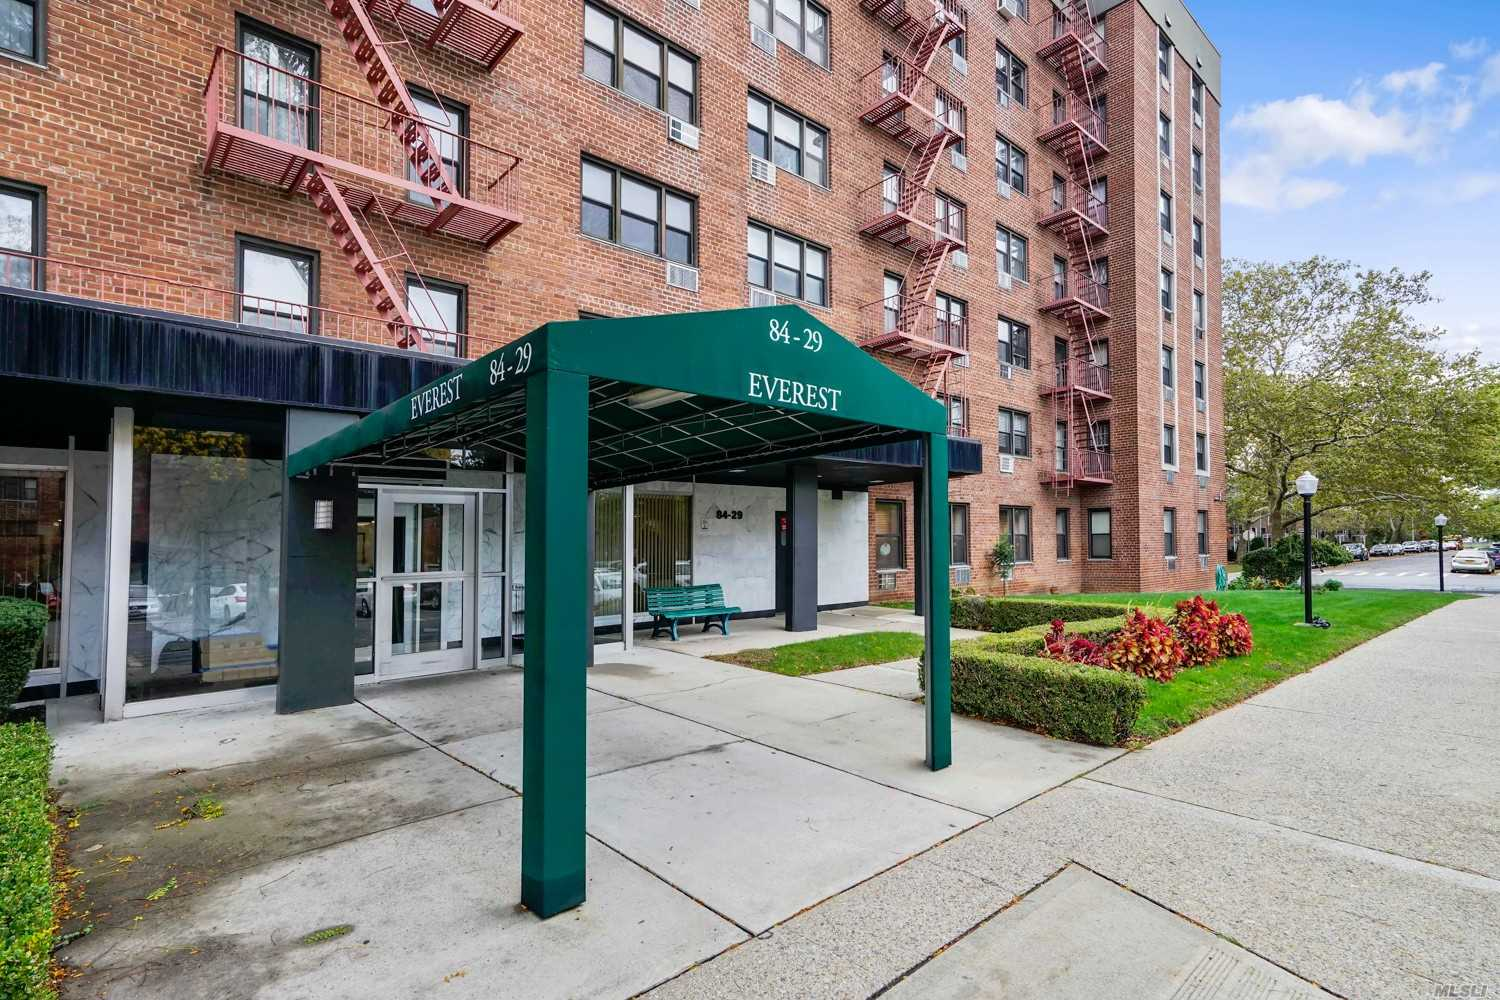 L-Shape Alcove Studio Cooperative. *Studio Can Easily Be Converted To A Small Private One Bedroom. Updated Unit With Lot's Of Natural Lights; And Good Closet/Storage Space. Laundry In Building. Intercom & Buzzer Vestibule Entrance. Park Benches Throughout Common Grounds. Located Near Shopping Center; Park And Express Bus To Midtown NY. Low Flip Tax, $5.00/Share, 185 Shares